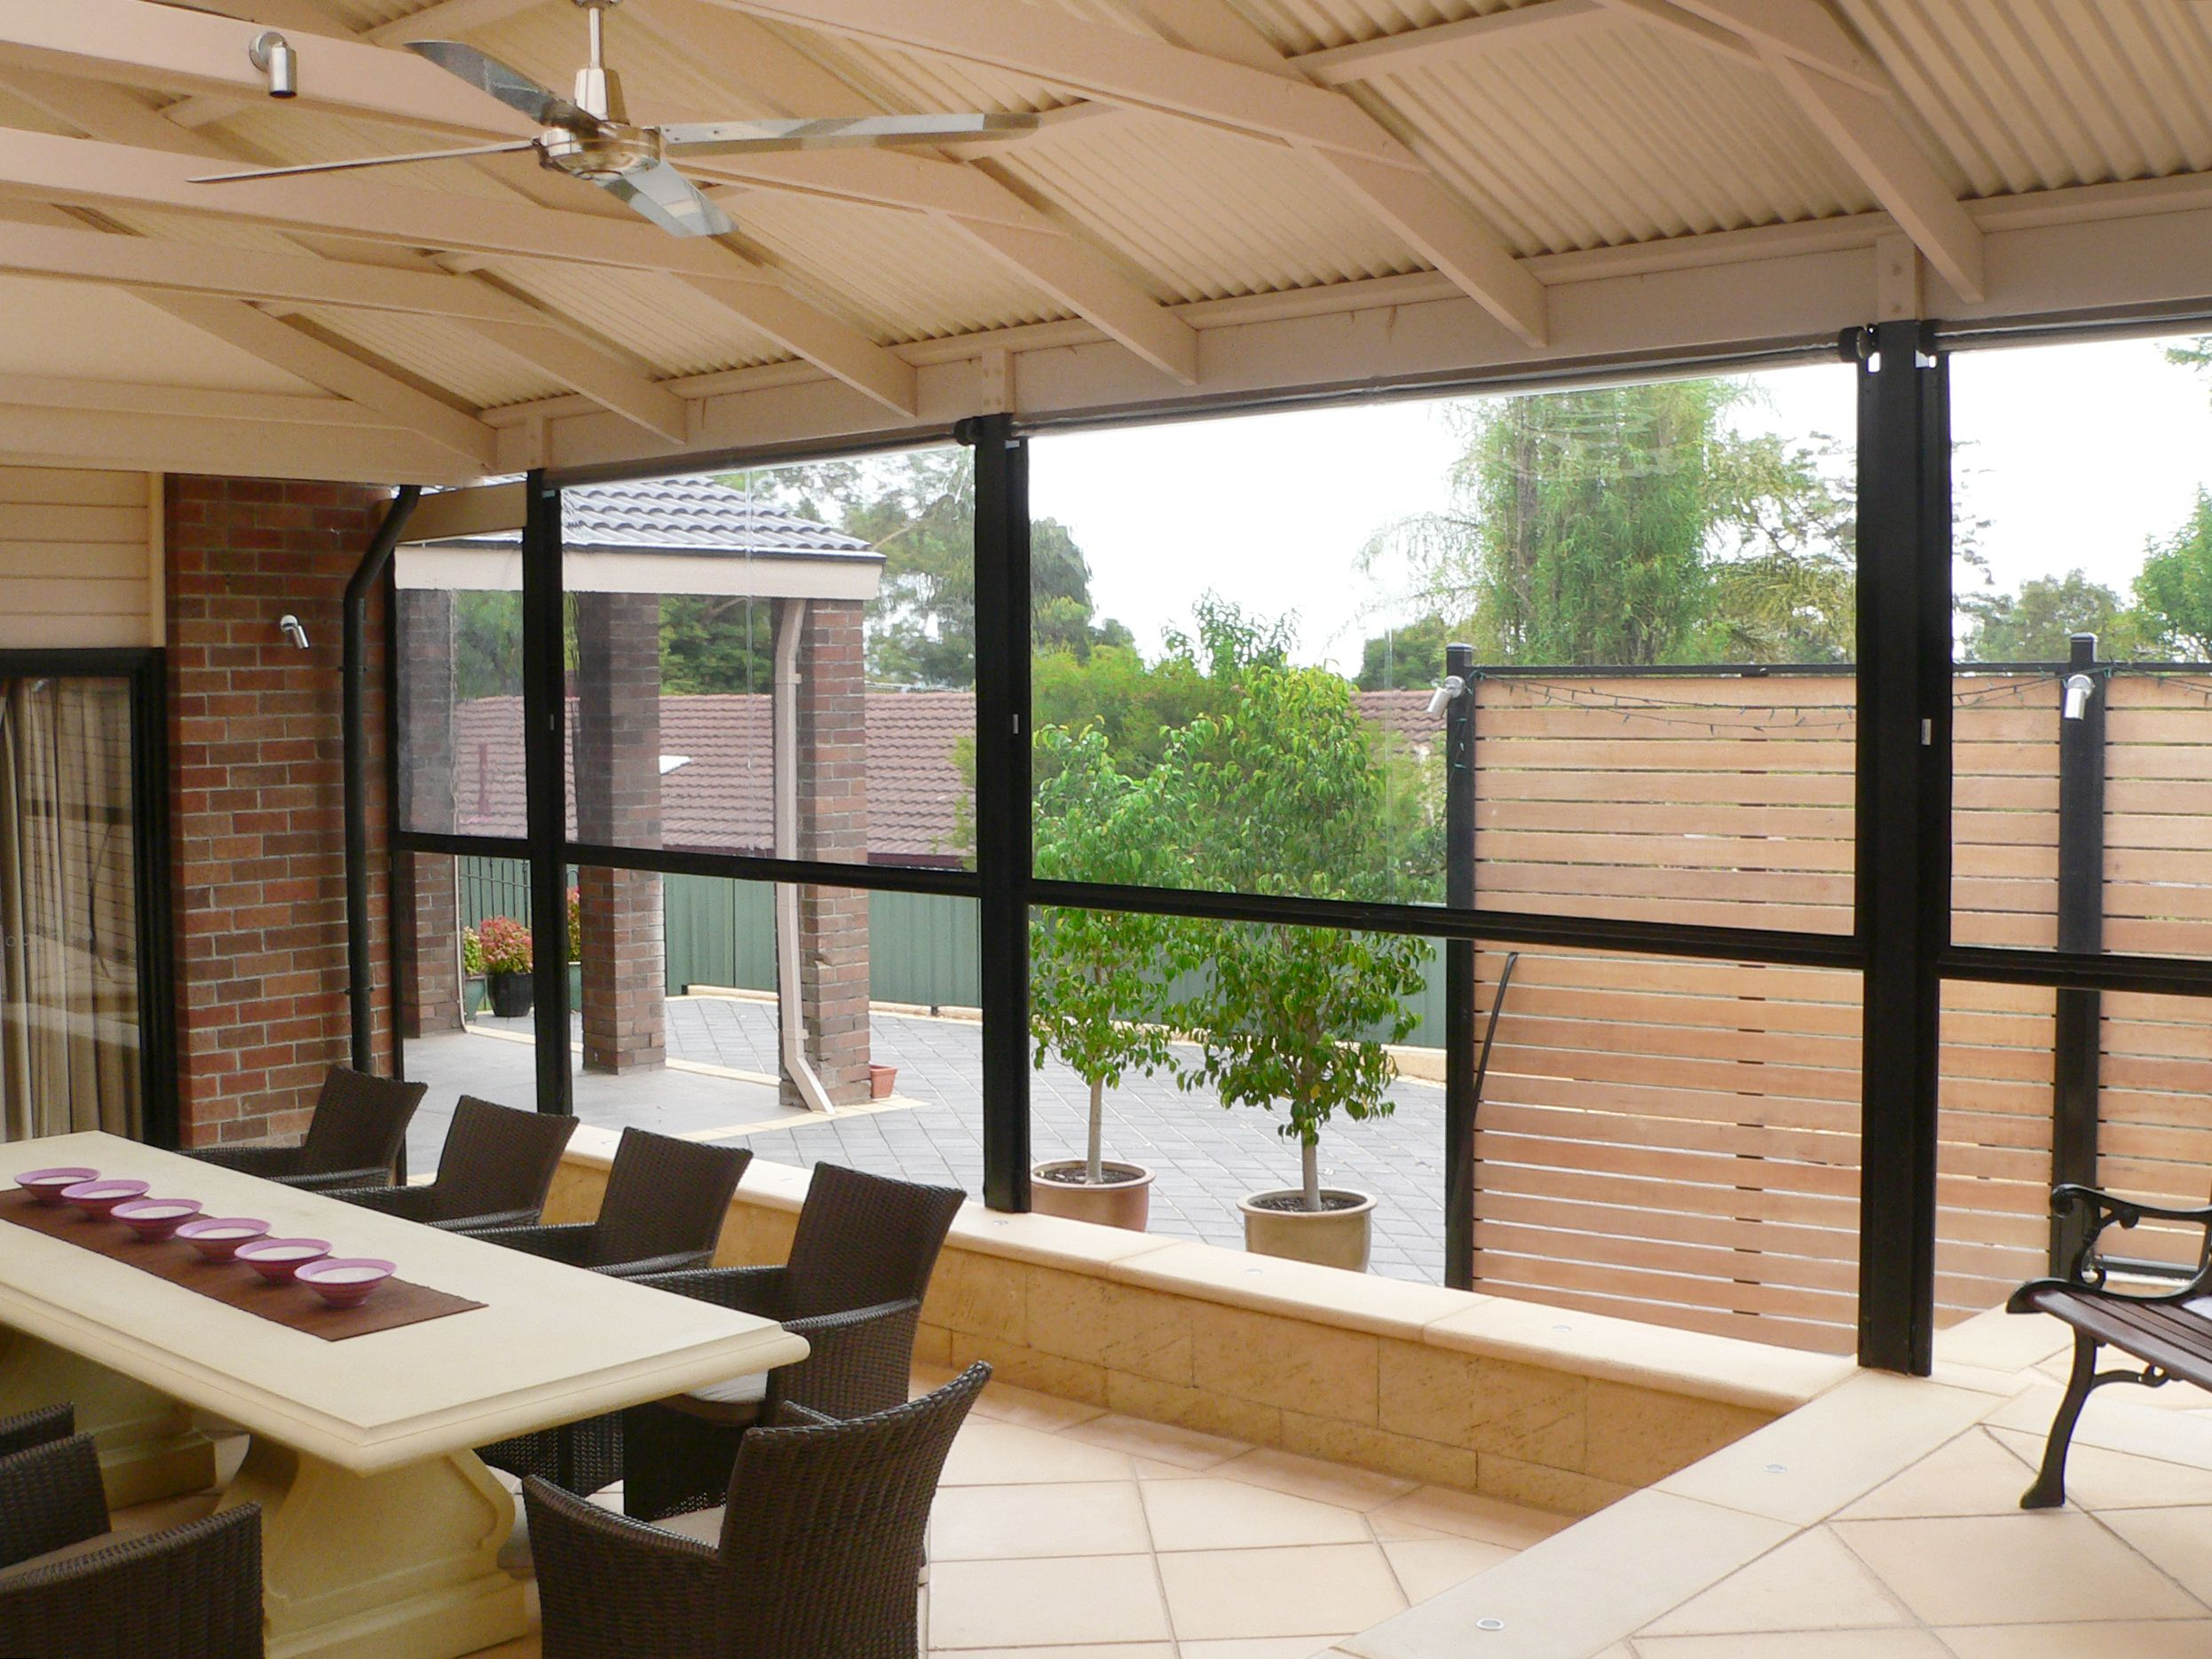 Outdoor Blinds Perth Wa In 2020 Outdoor Blinds Outdoor Patio